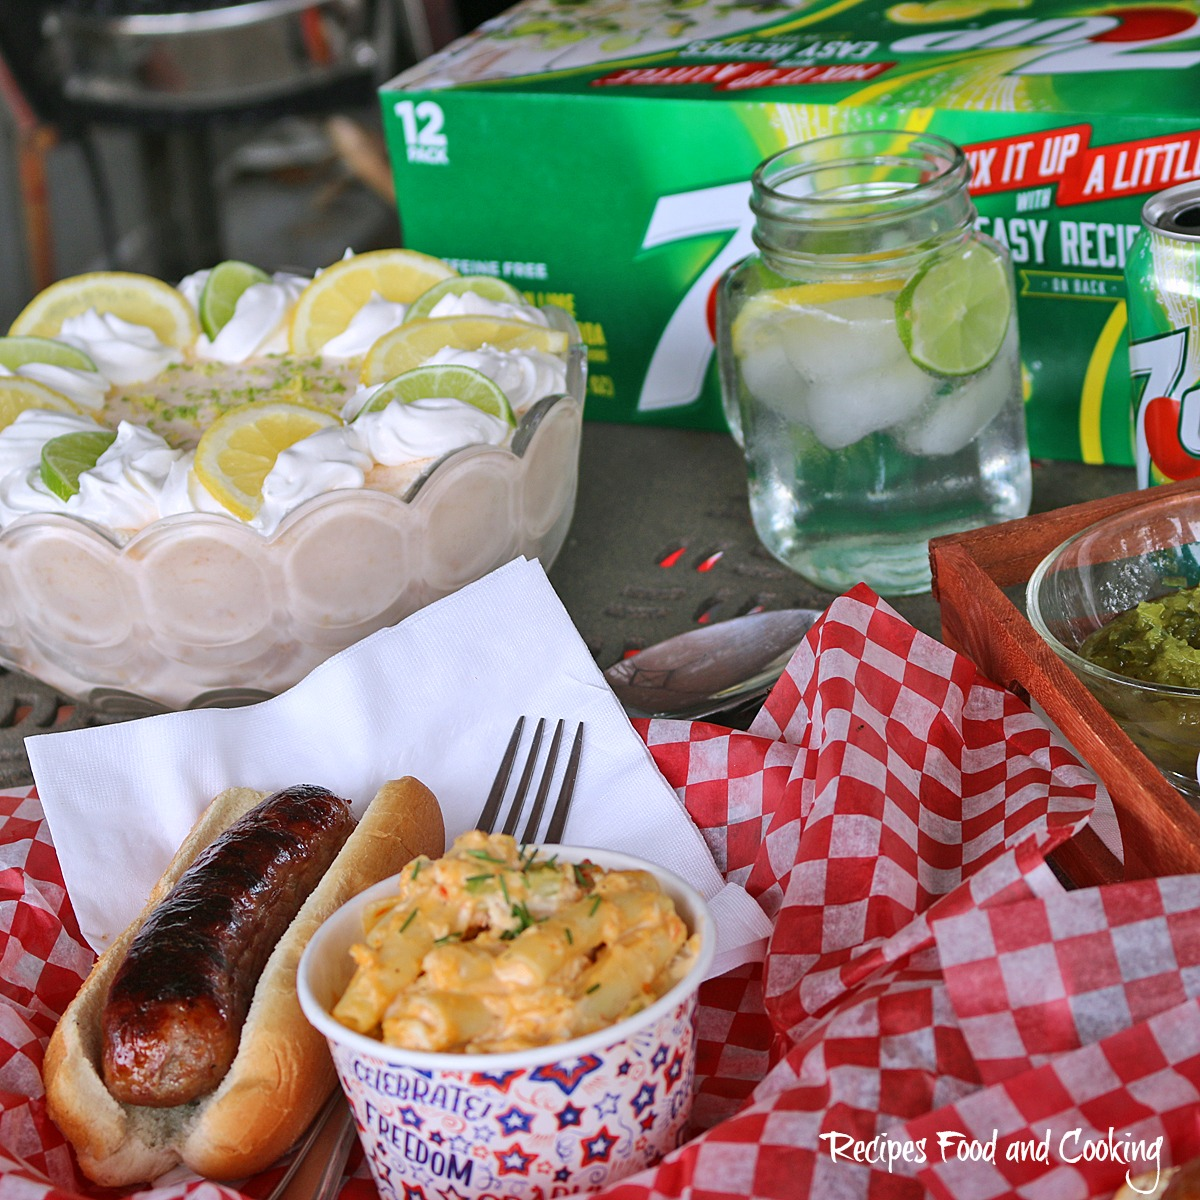 Grilled Johnsonville Brats with 7 UP Tropical Dream Salad